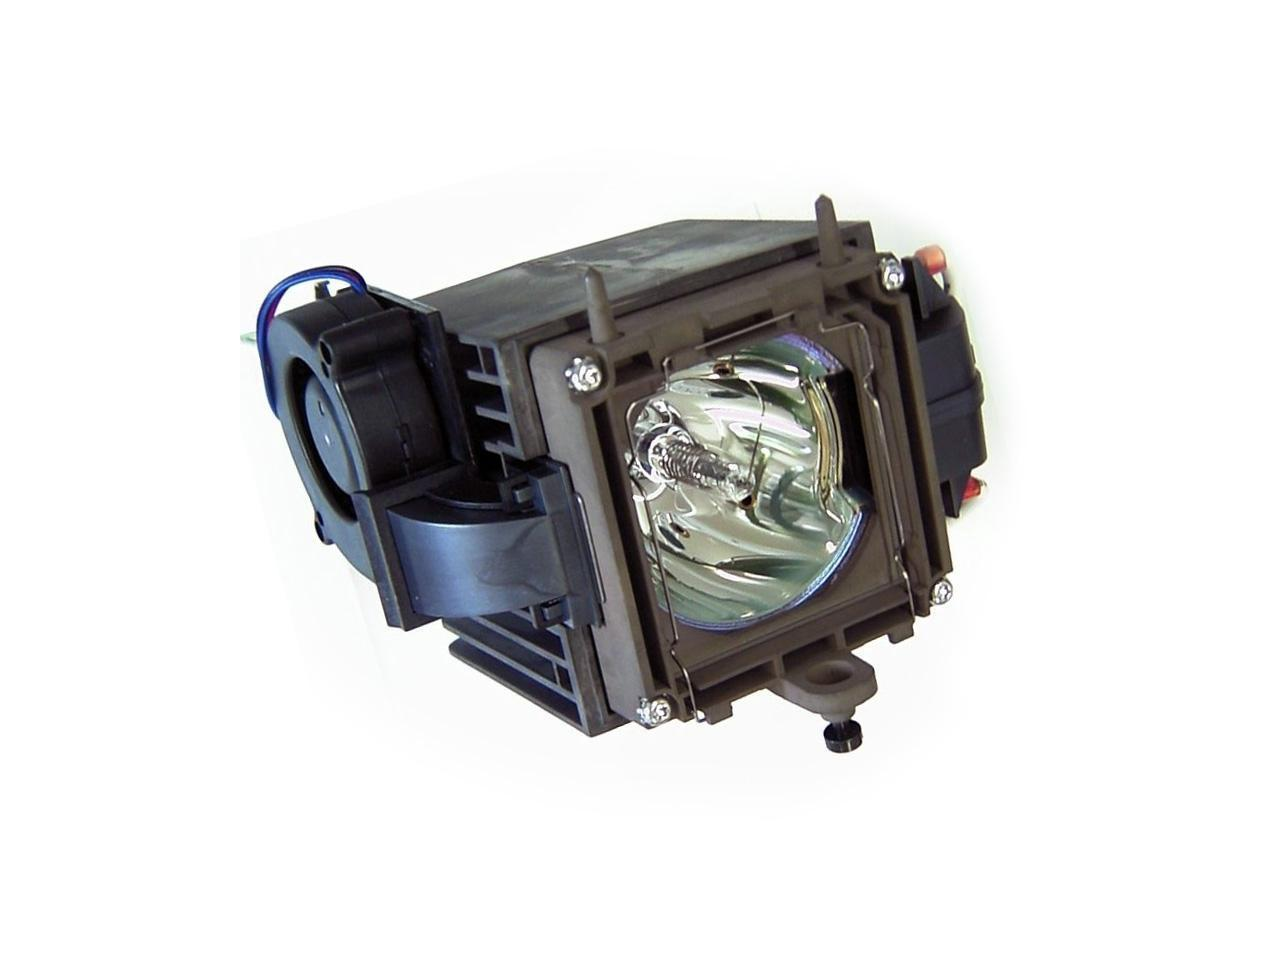 Power by Phoenix Replacement Lamp Assembly with Genuine Original OEM Bulb Inside for Knoll HD108 Projector